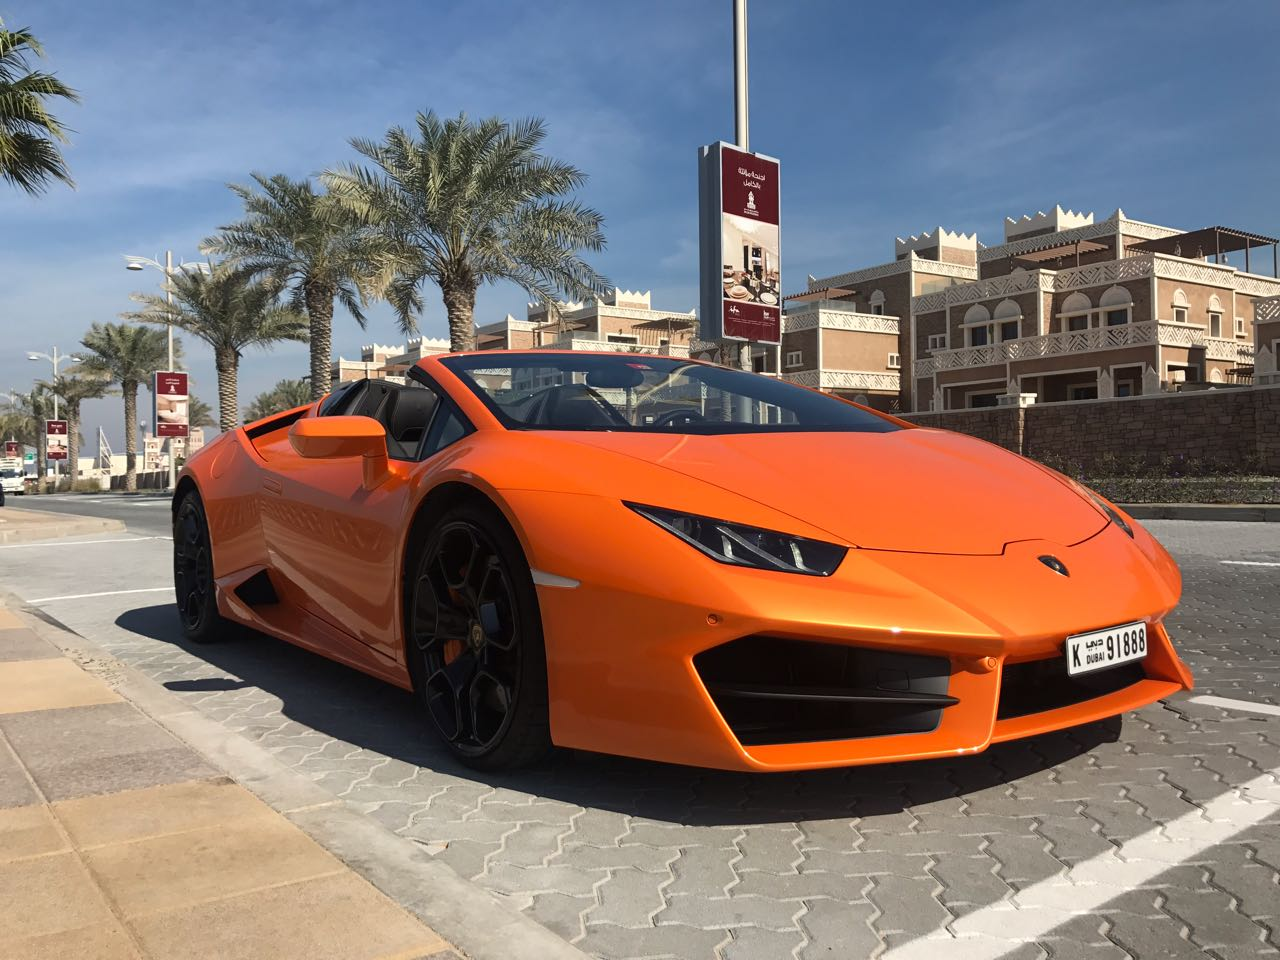 Lamborghini Huracán LP 610-4 Spyder Orange